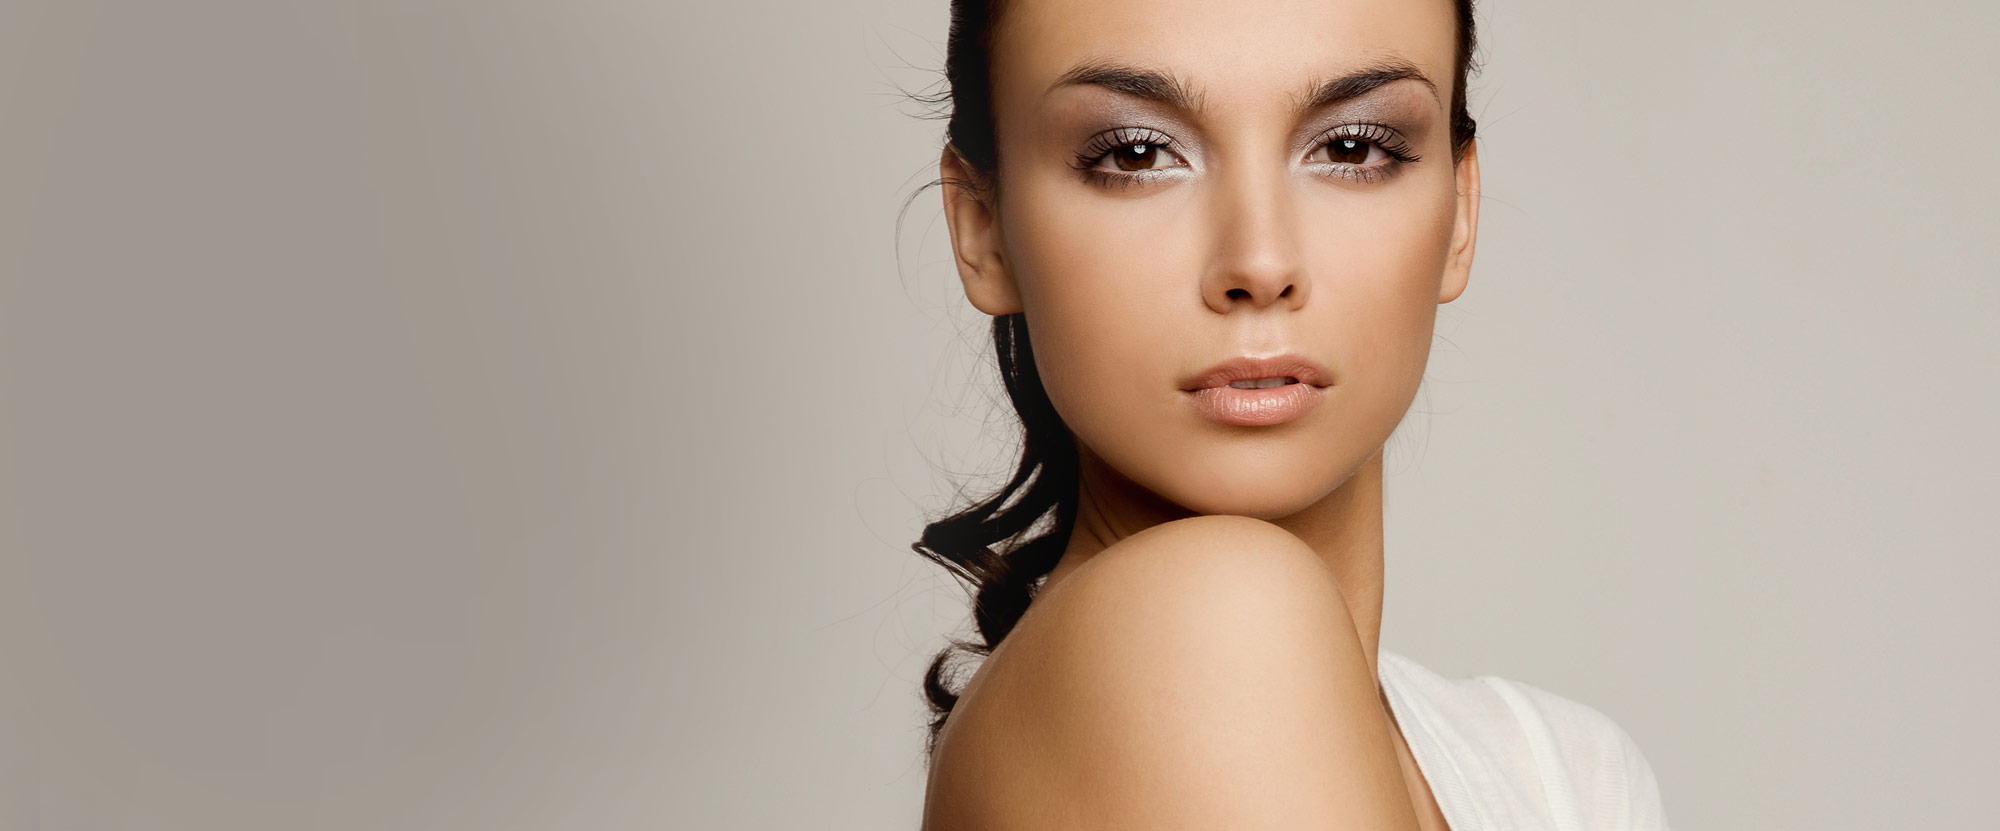 Banner | Skin and Laser Surgery Center of New England